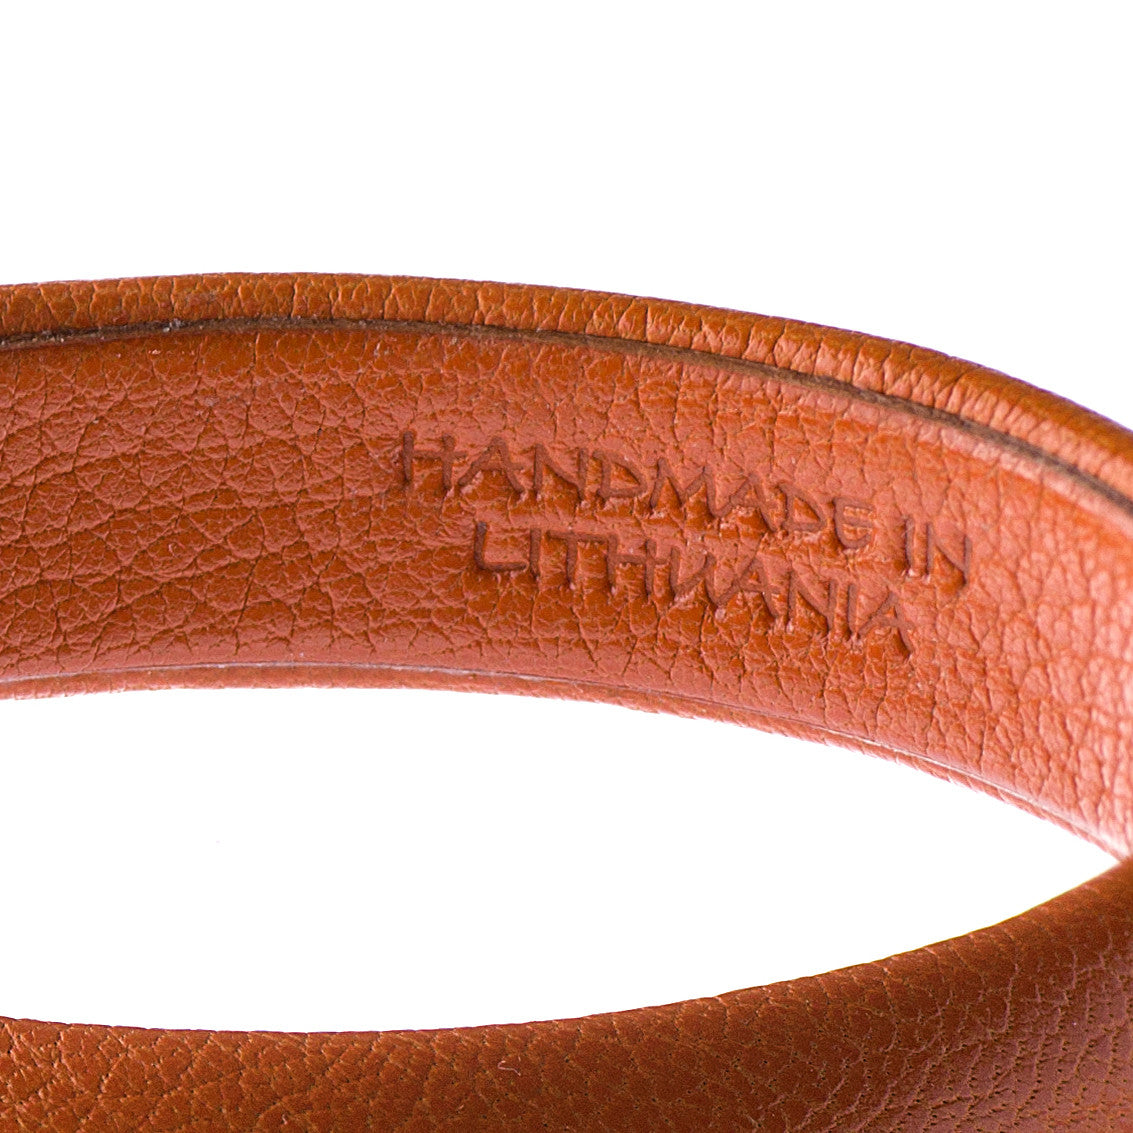 Orange Leather Bangle Bracelet Hermes inside made in Lithuania sd1Twenty5